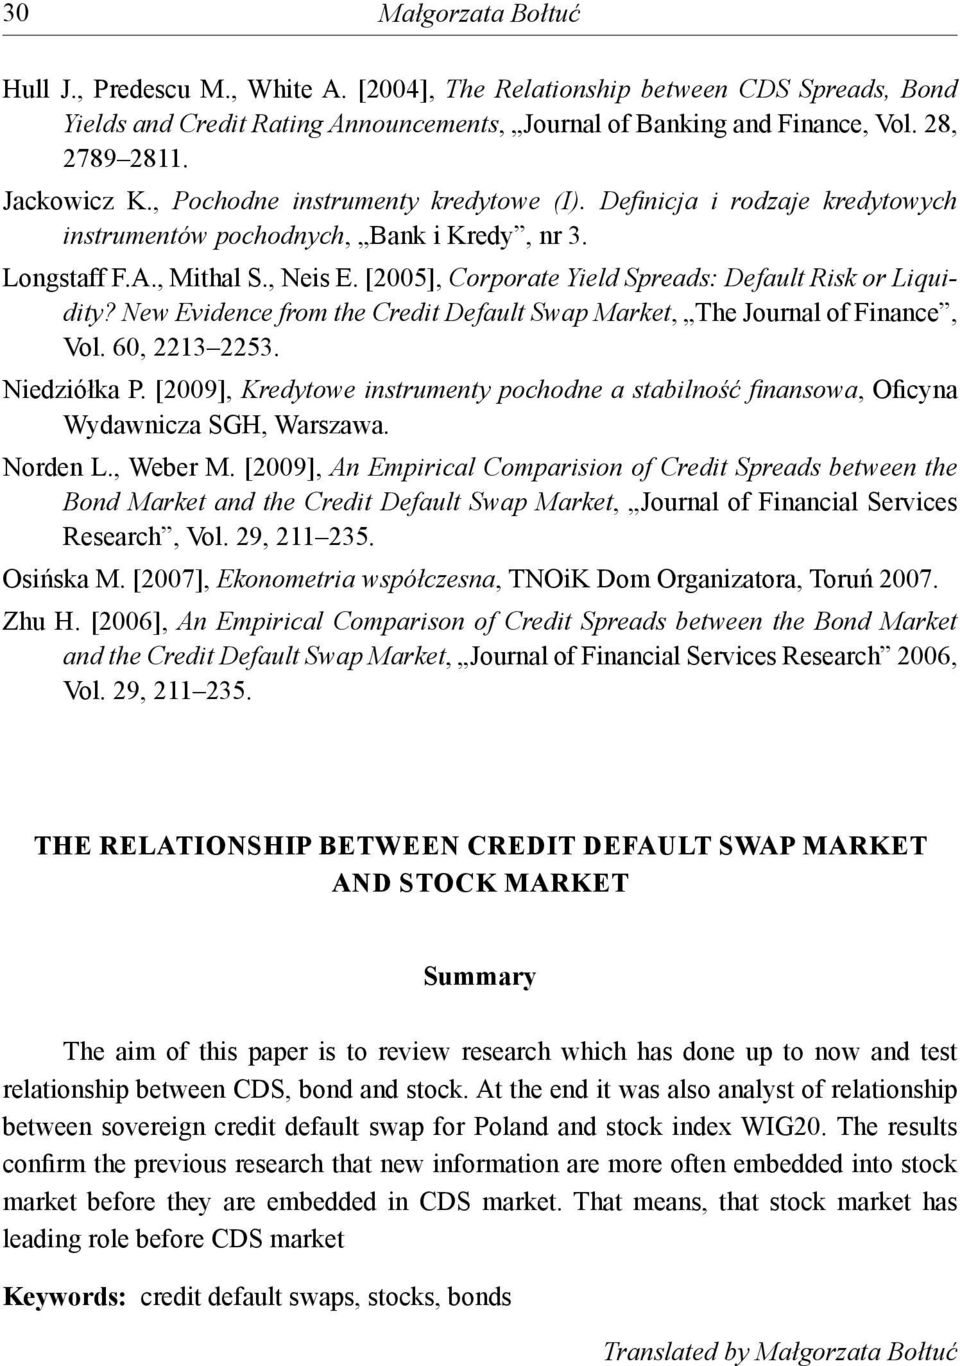 New Evidence from he Credi Defaul Swap Marke, The Journal of Finance, Vol. 60, 2213 2253. Niedziółka P. [2009], Kredyowe insrumeny pochodne a sabilność fi nansowa, Oficyna Wydawnicza SGH, Warszawa.